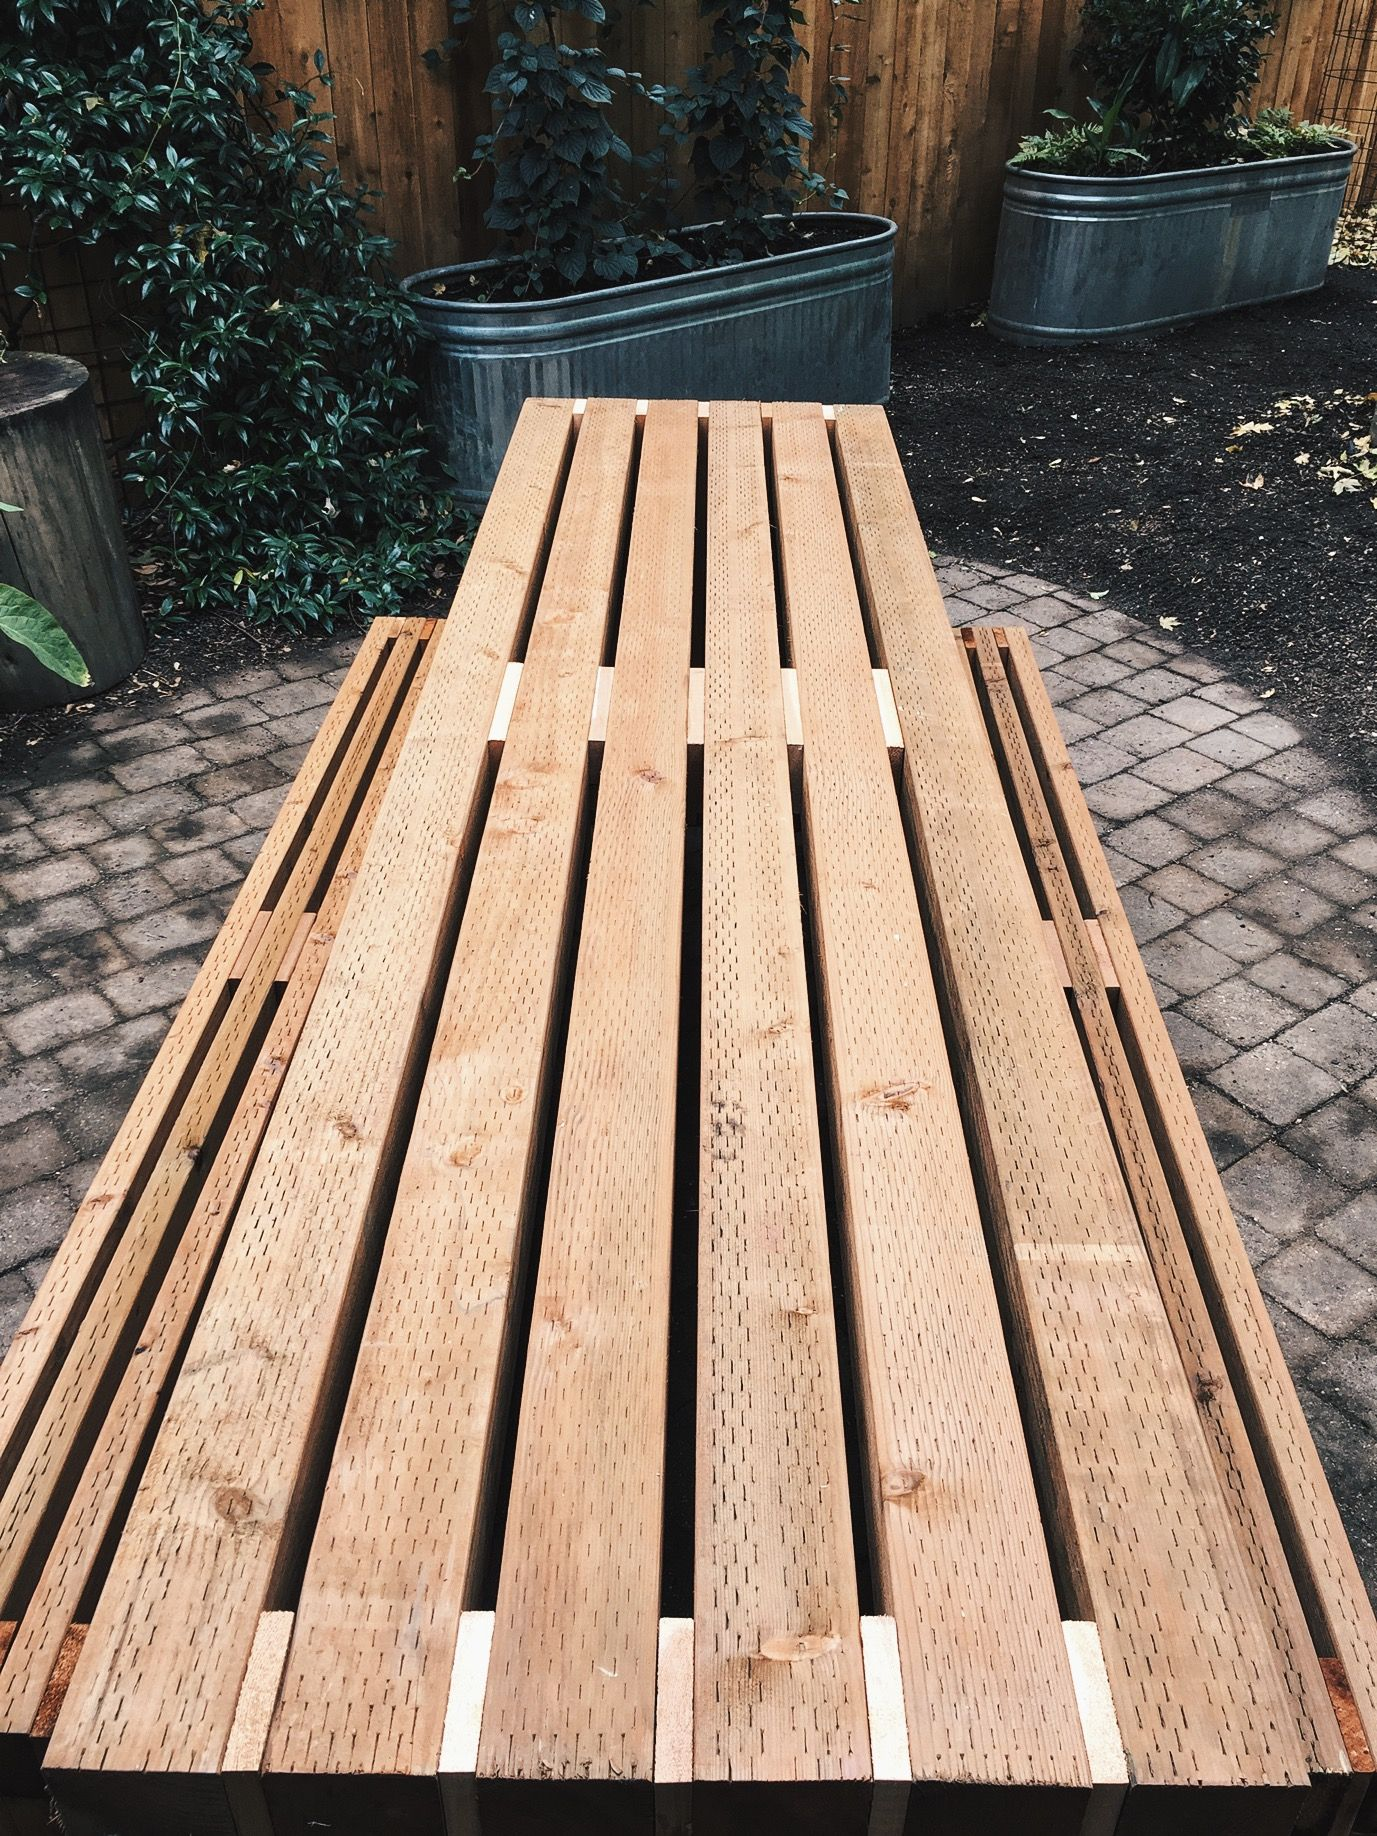 How To Treat Cedar Wood Outdoor Furniture